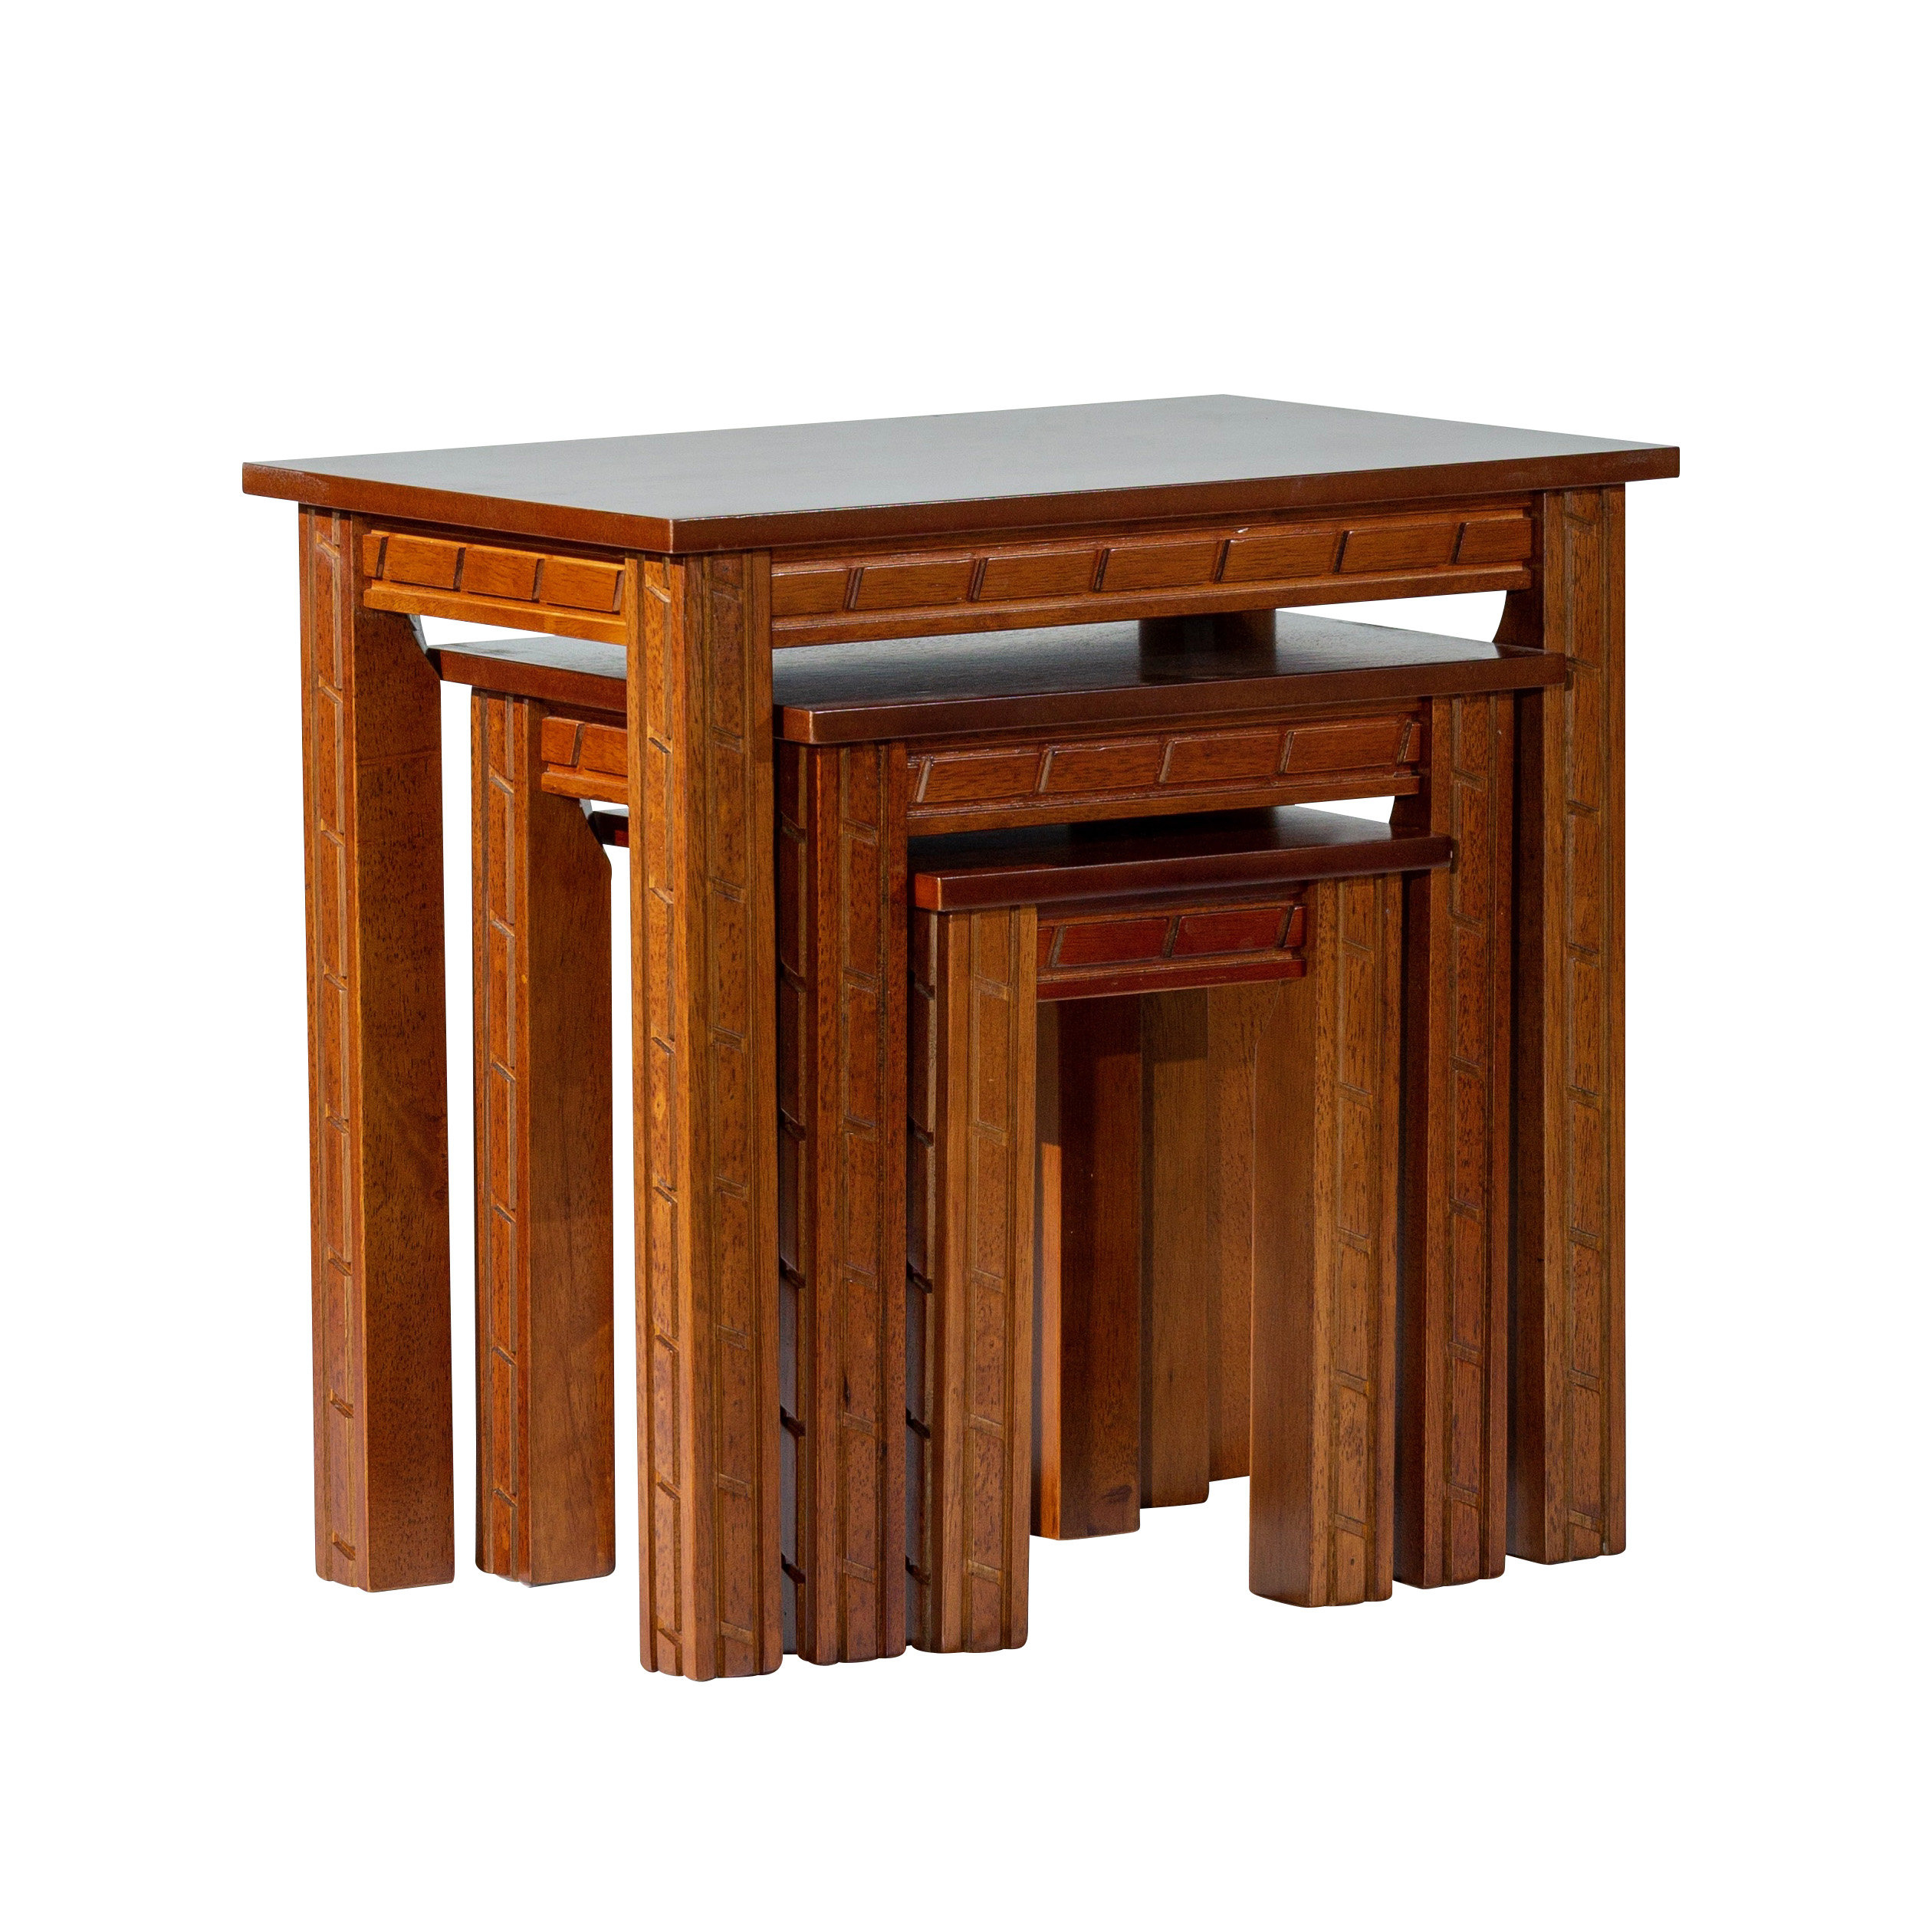 Millwood Pines Castellanos Furniture 3 Piece Nesting Tables (View 3 of 25)